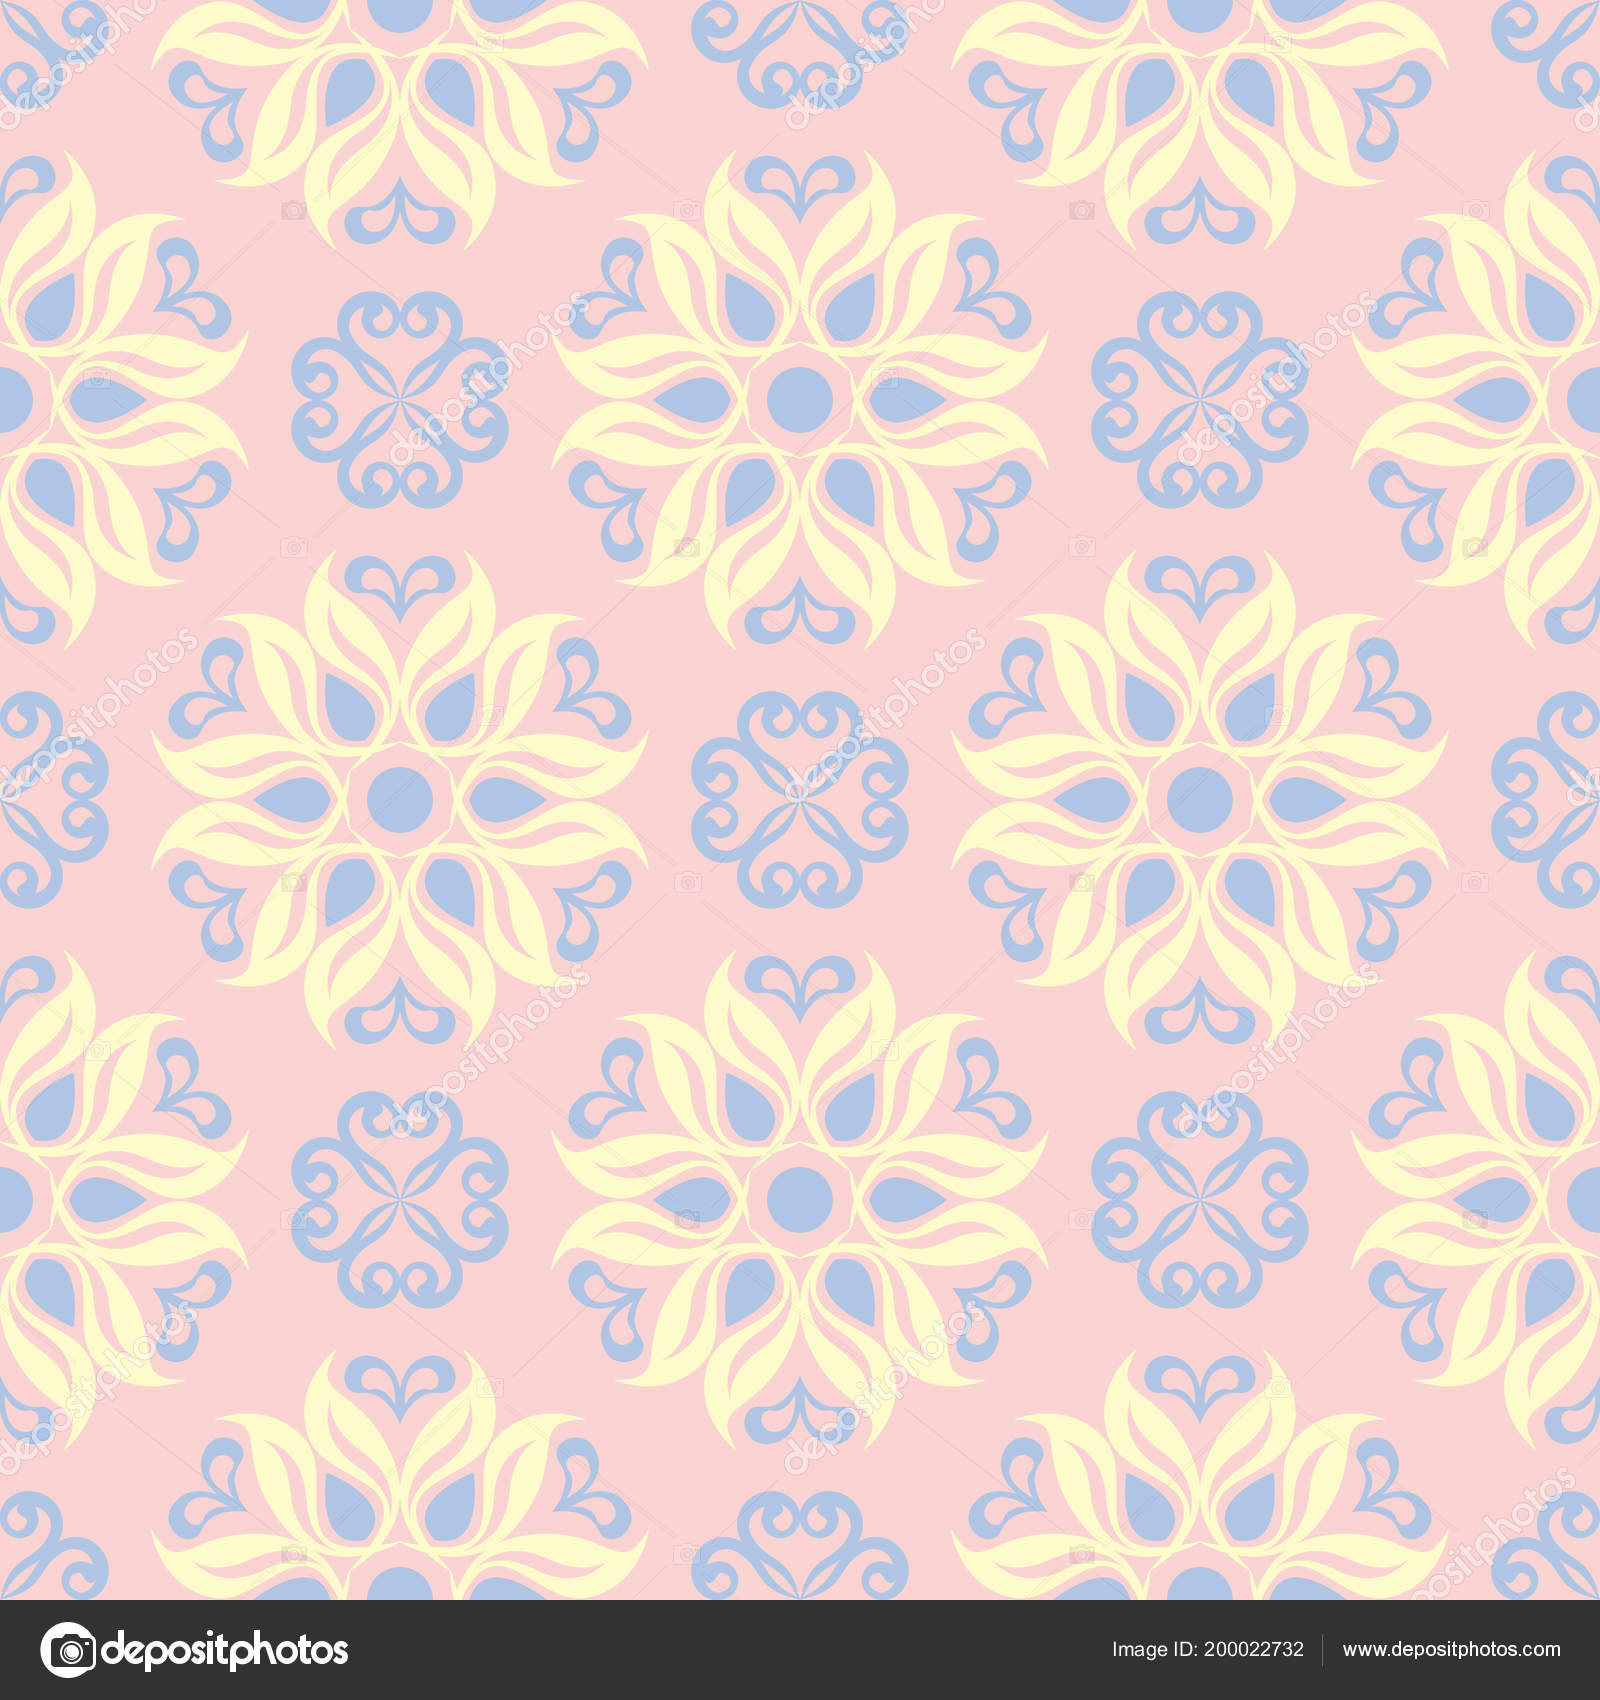 Floral Seamless Background Pink Blue Yellow Flower Pattern